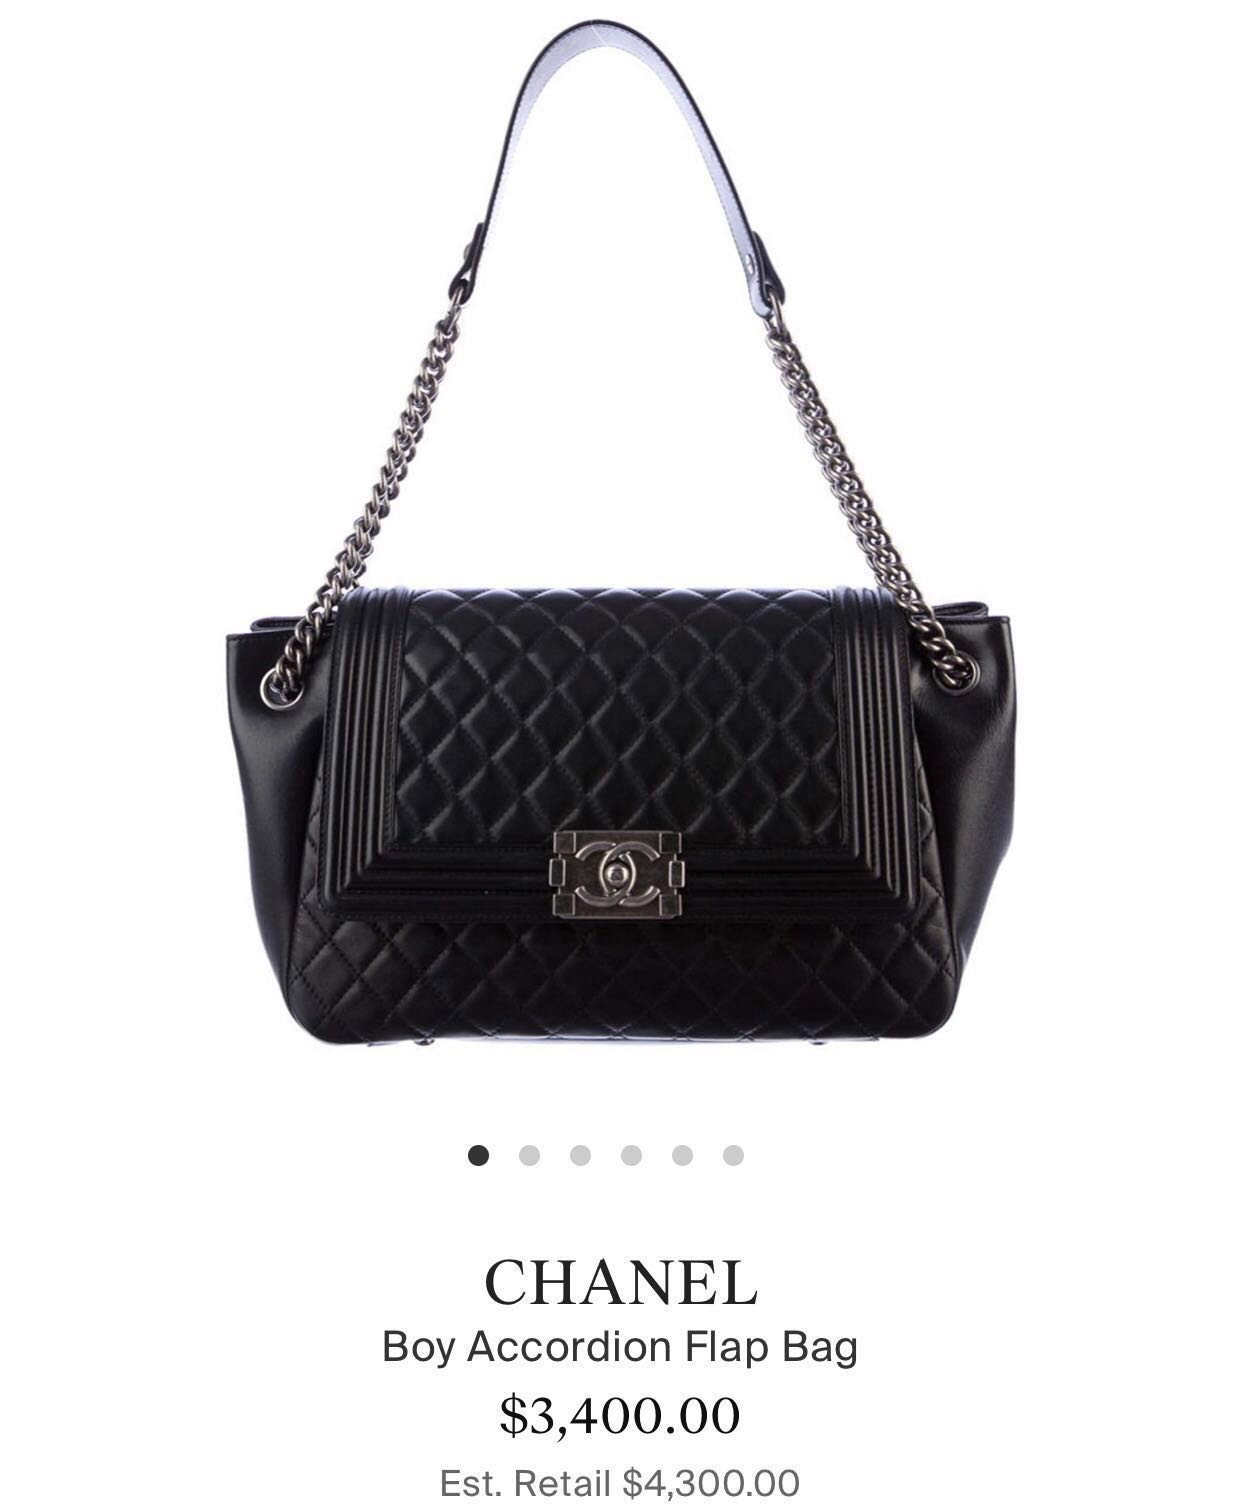 8190b276eac6 Authentic Chanel boy Accordion bag, Women's Fashion, Bags & Wallets ...